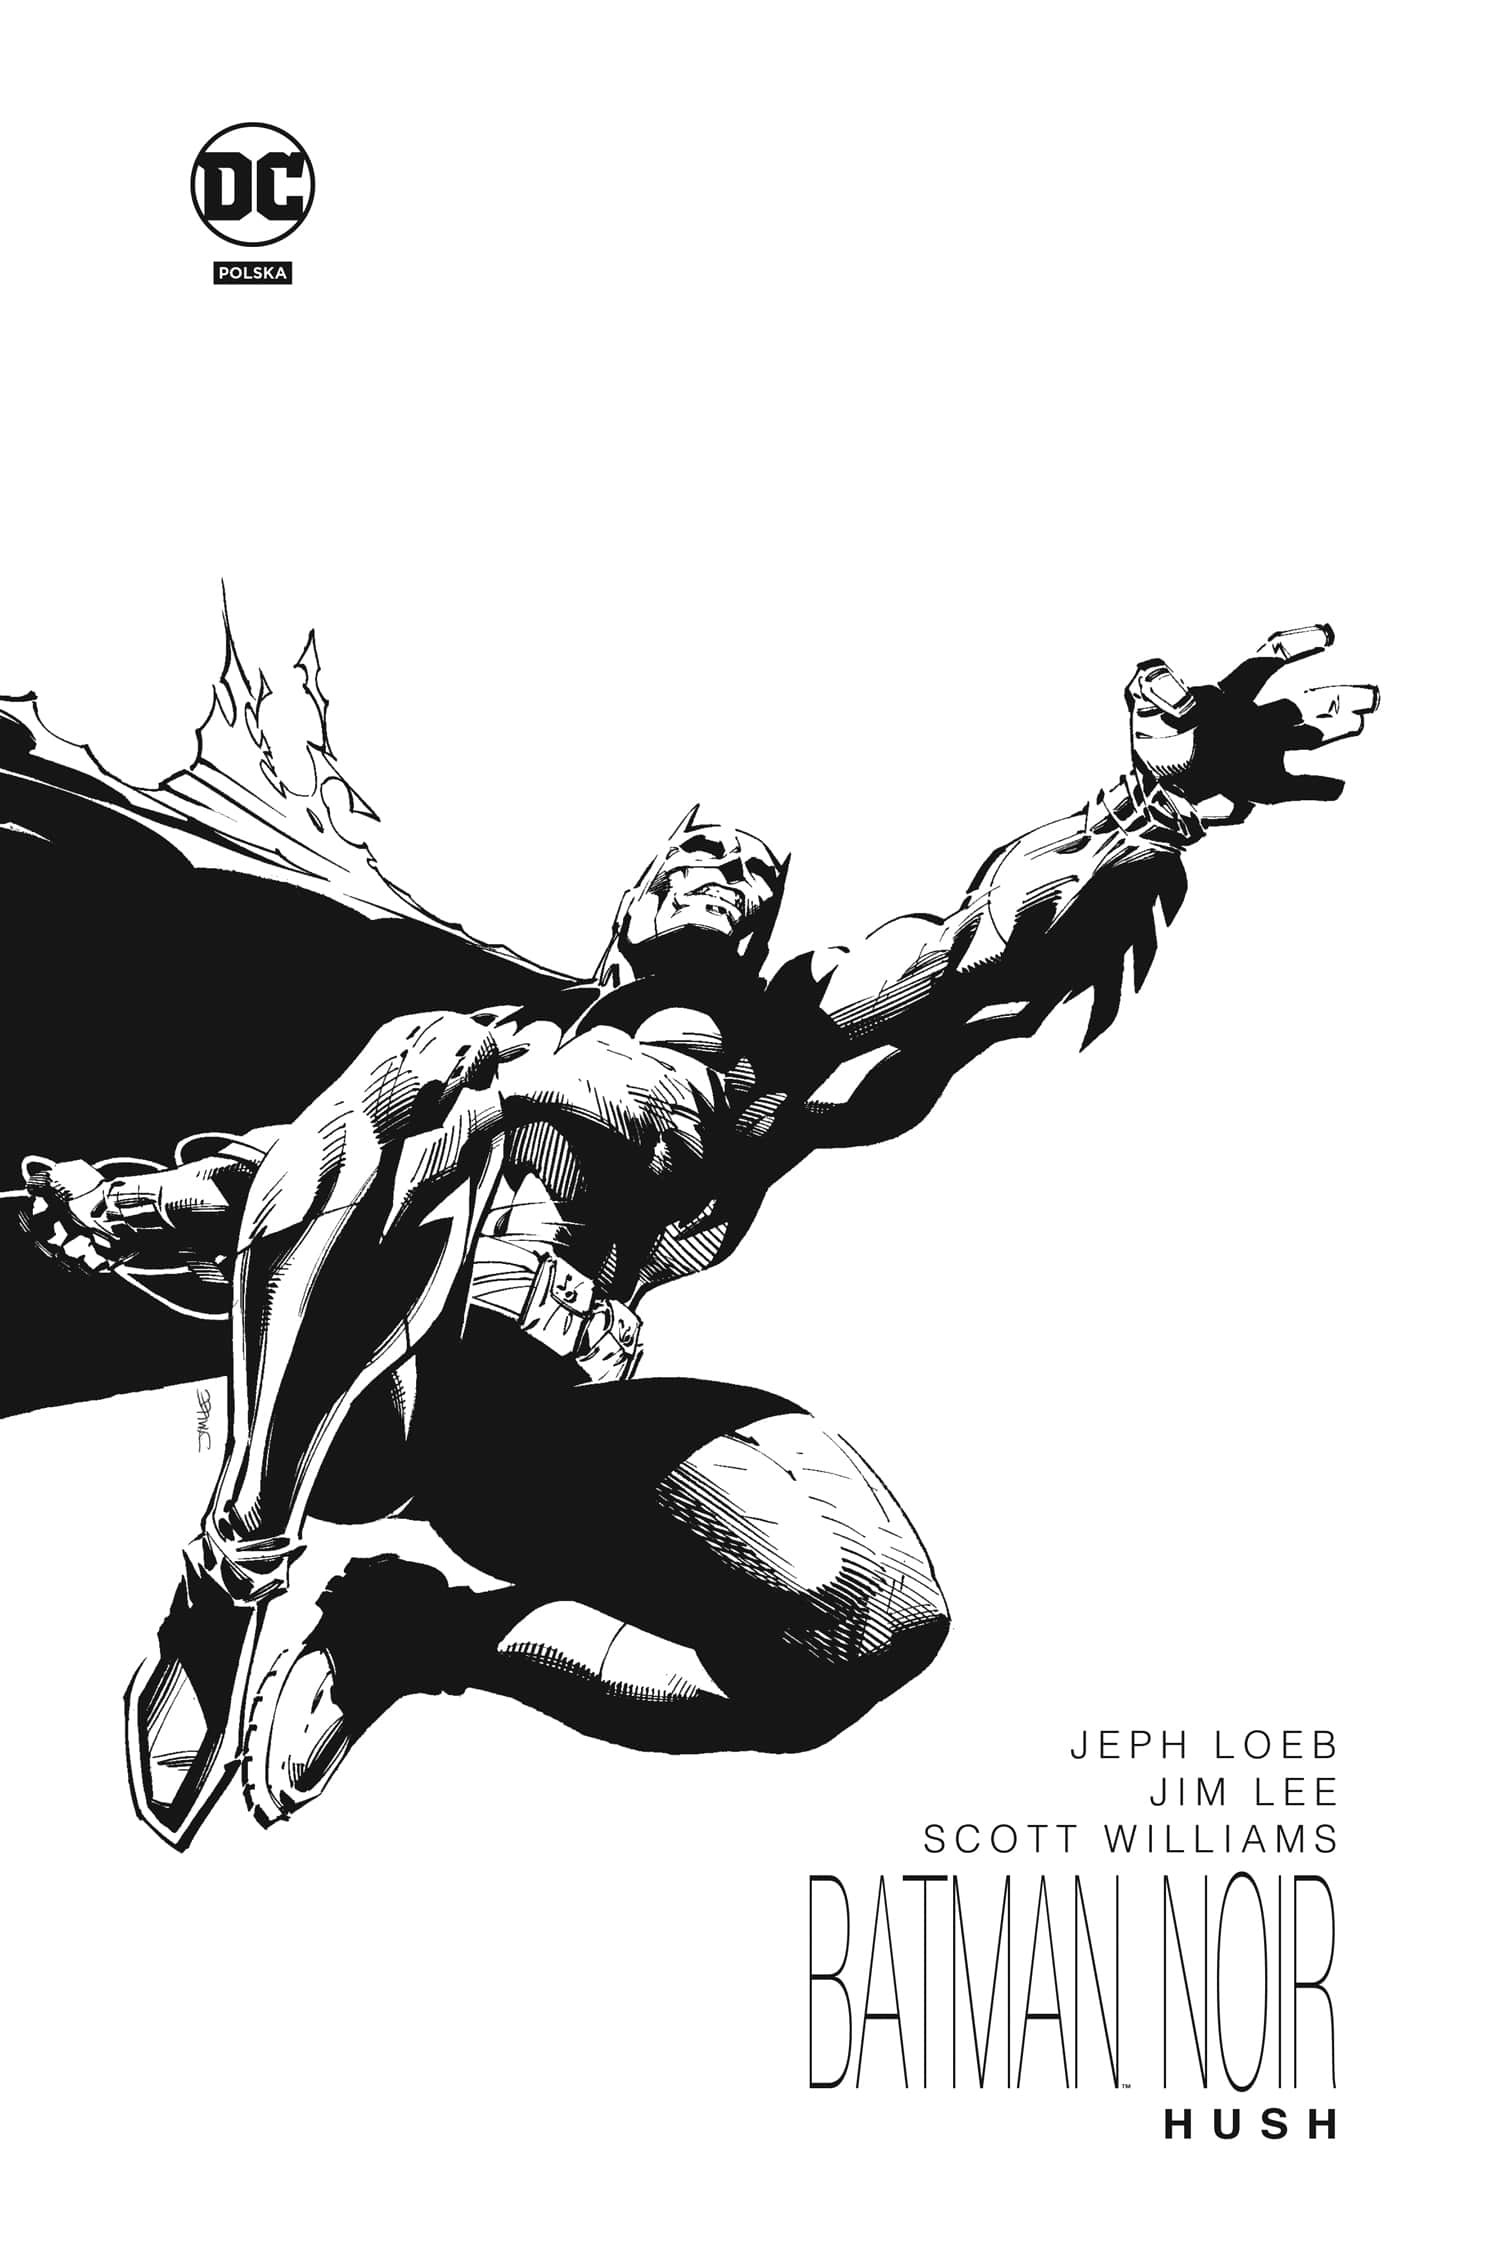 BATMAN noir_HUSH_cover 300 dpi-min.jpg